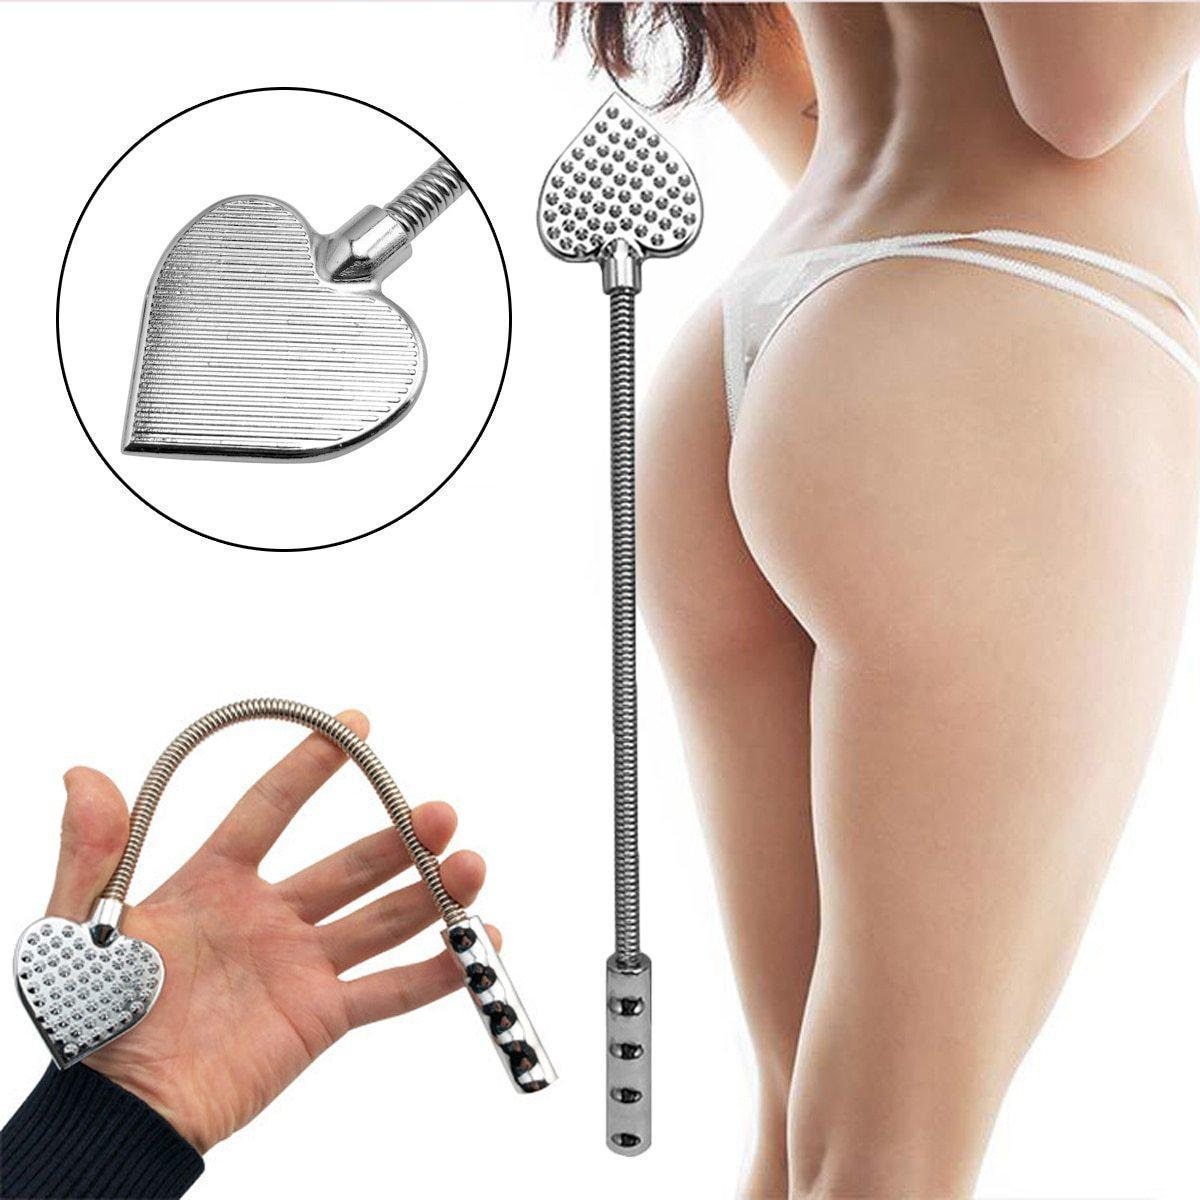 Stainless Steel Spring Shaft Crop-Good Girl xox-Silver-buy-bdsm-bondage-gear-tools-toys-online-good-girl-xox